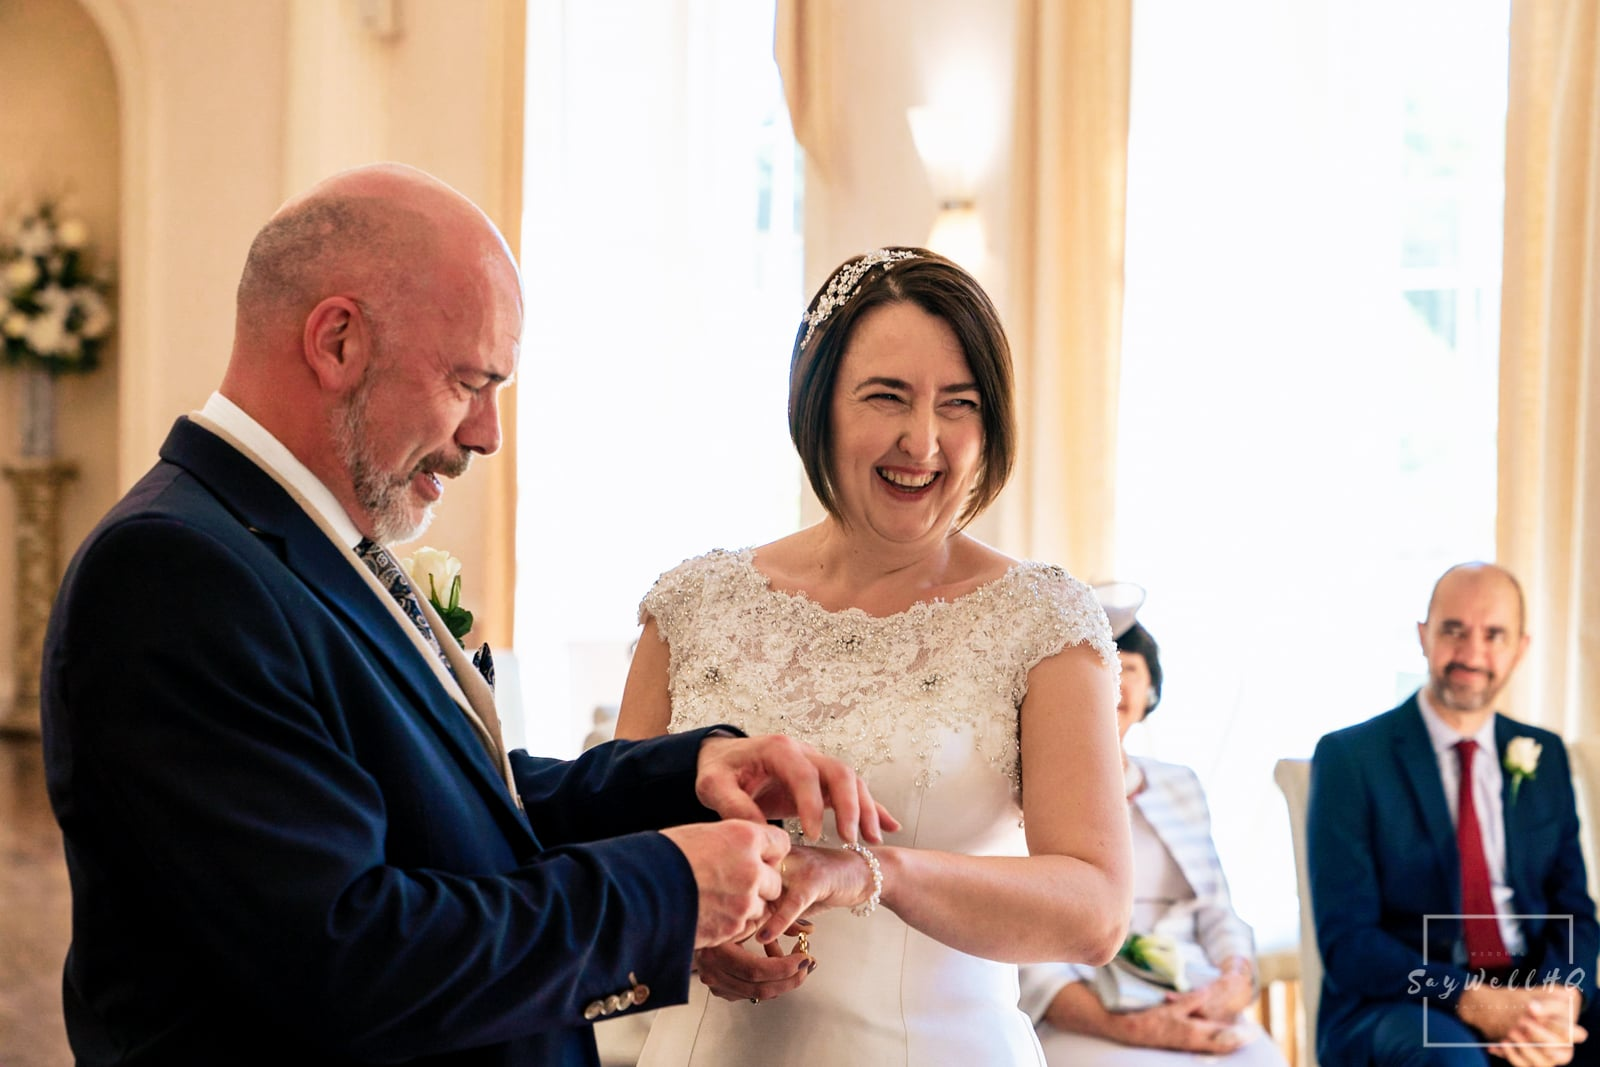 Colwick Hall Wedding Photography + Colwick Hall Wedding Photographer + bride and groom exchange wedding rings during their wedding ceremony at Colwick Hall